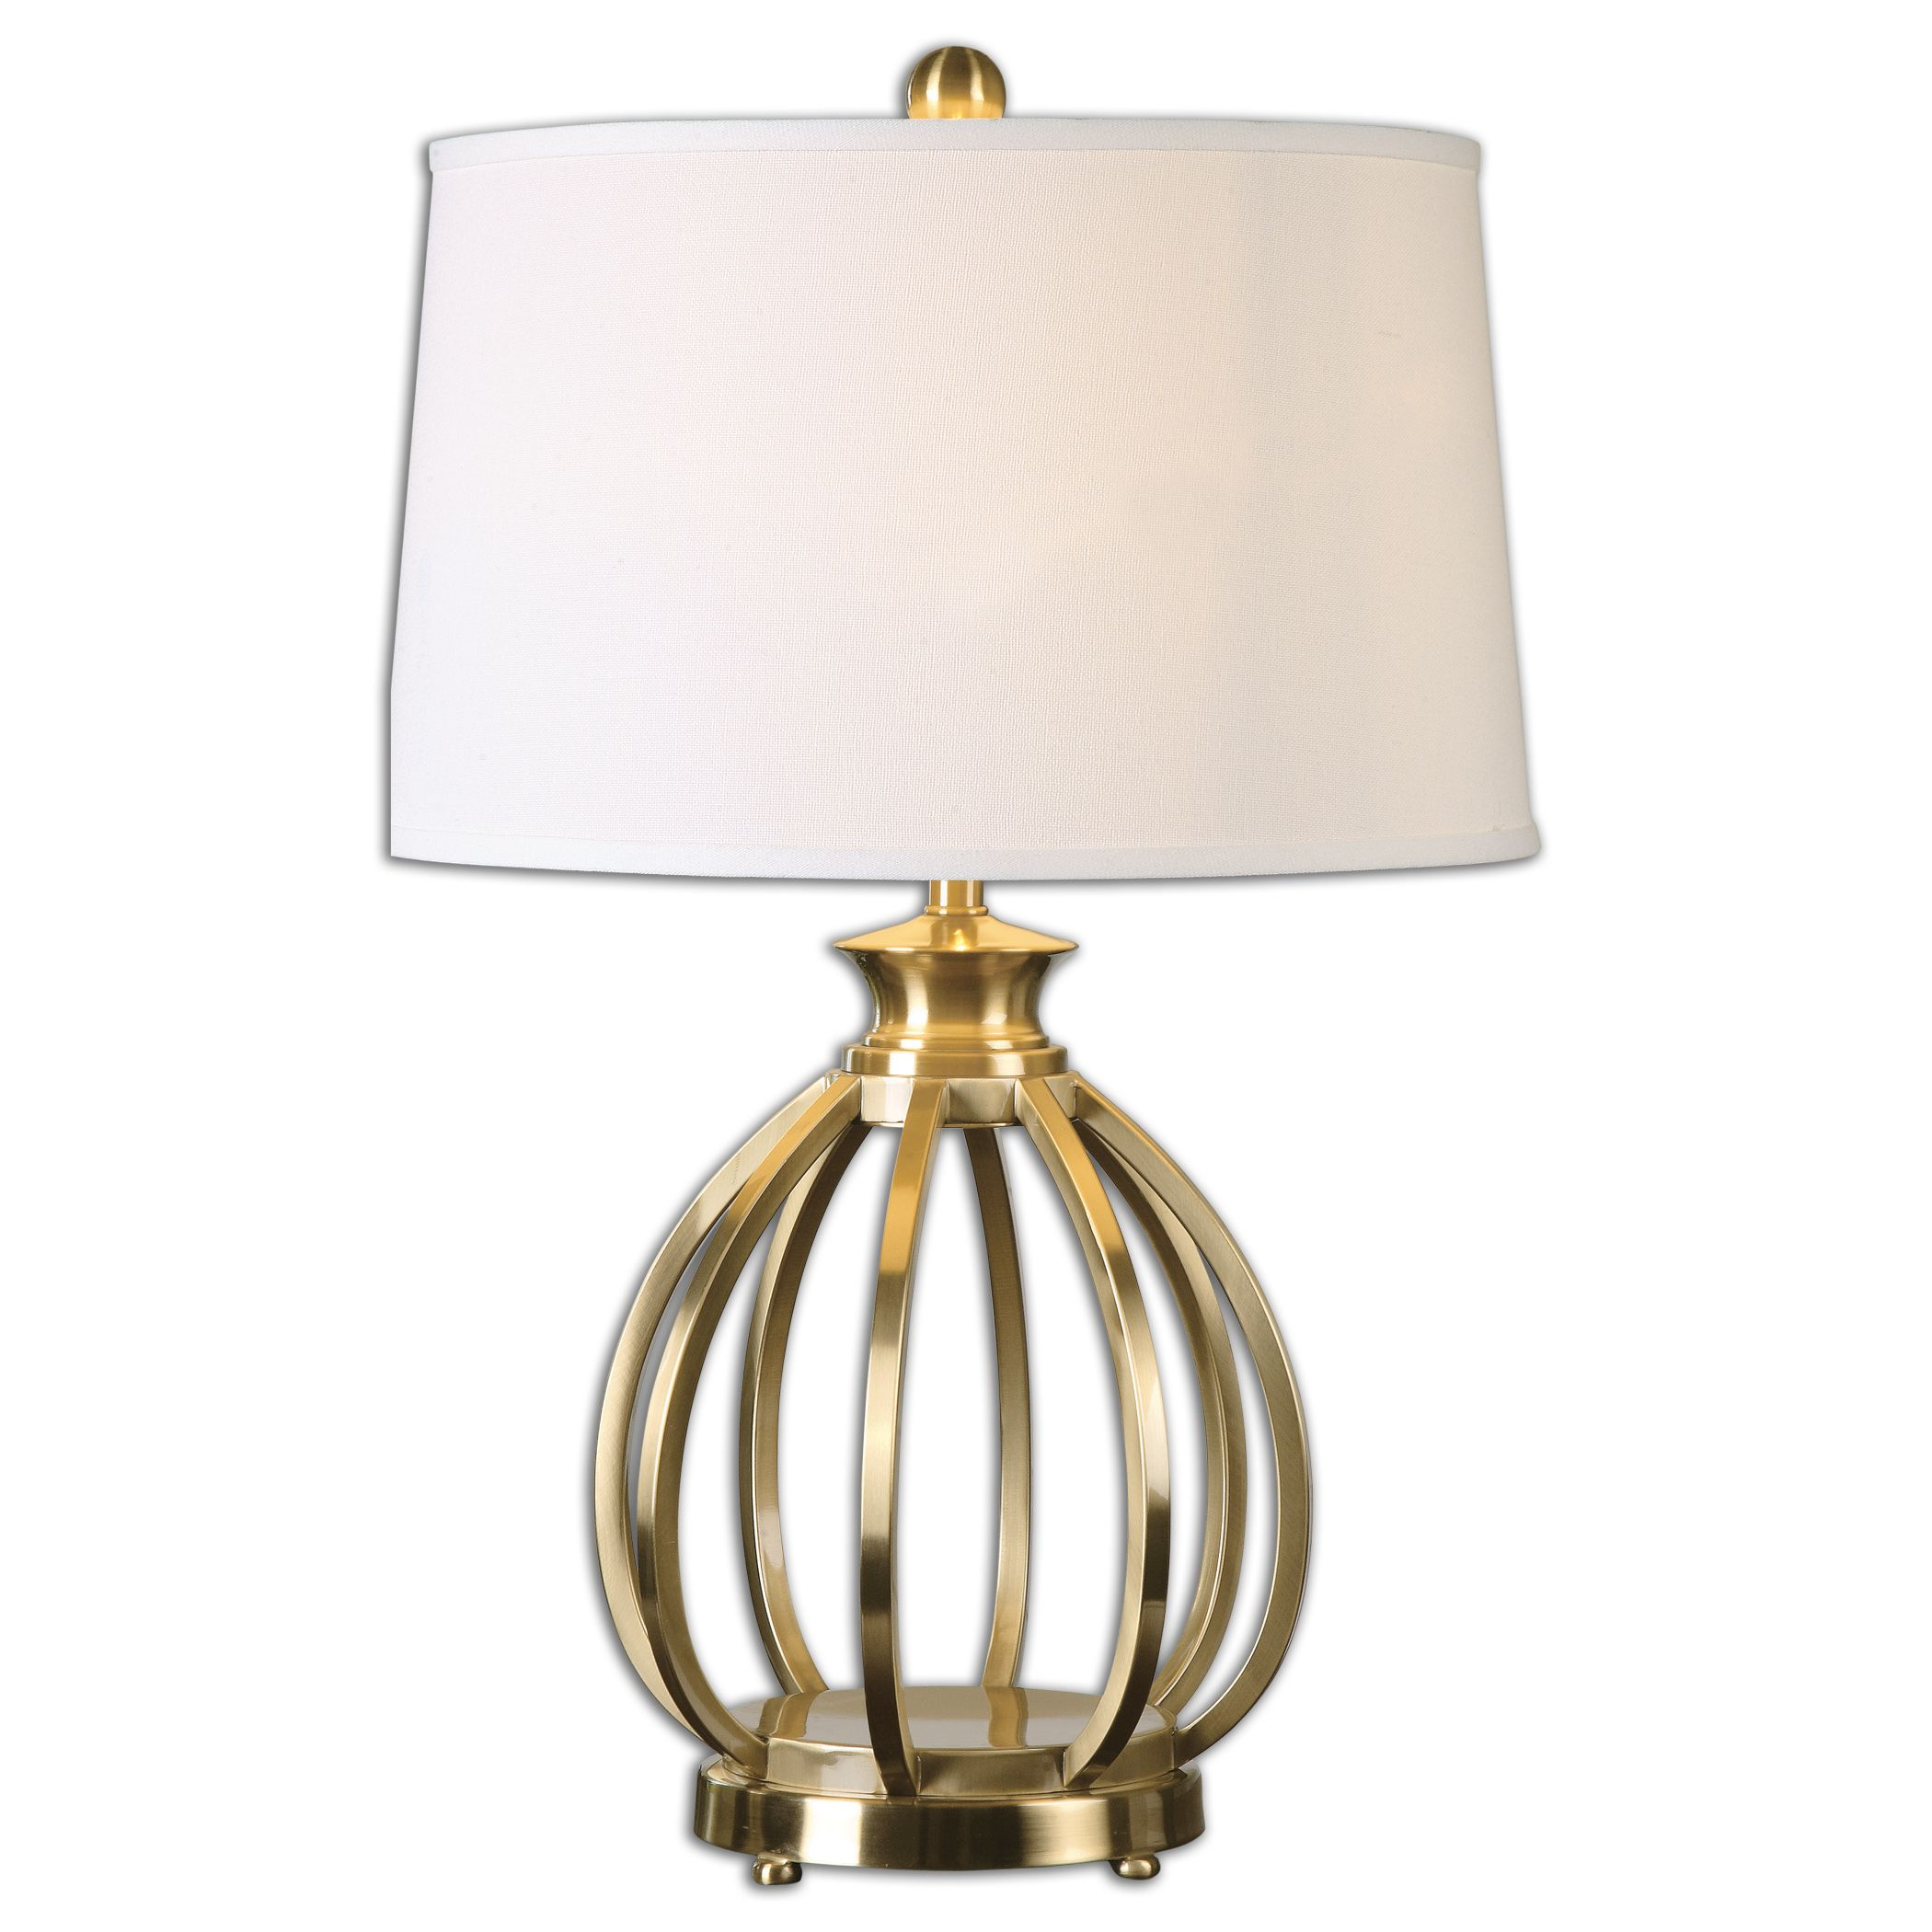 Uttermost-26167-Decimus - 1 Light Table Lamp  Plated Brushed Brass Finish with Crisp White Linen Fabric Shade